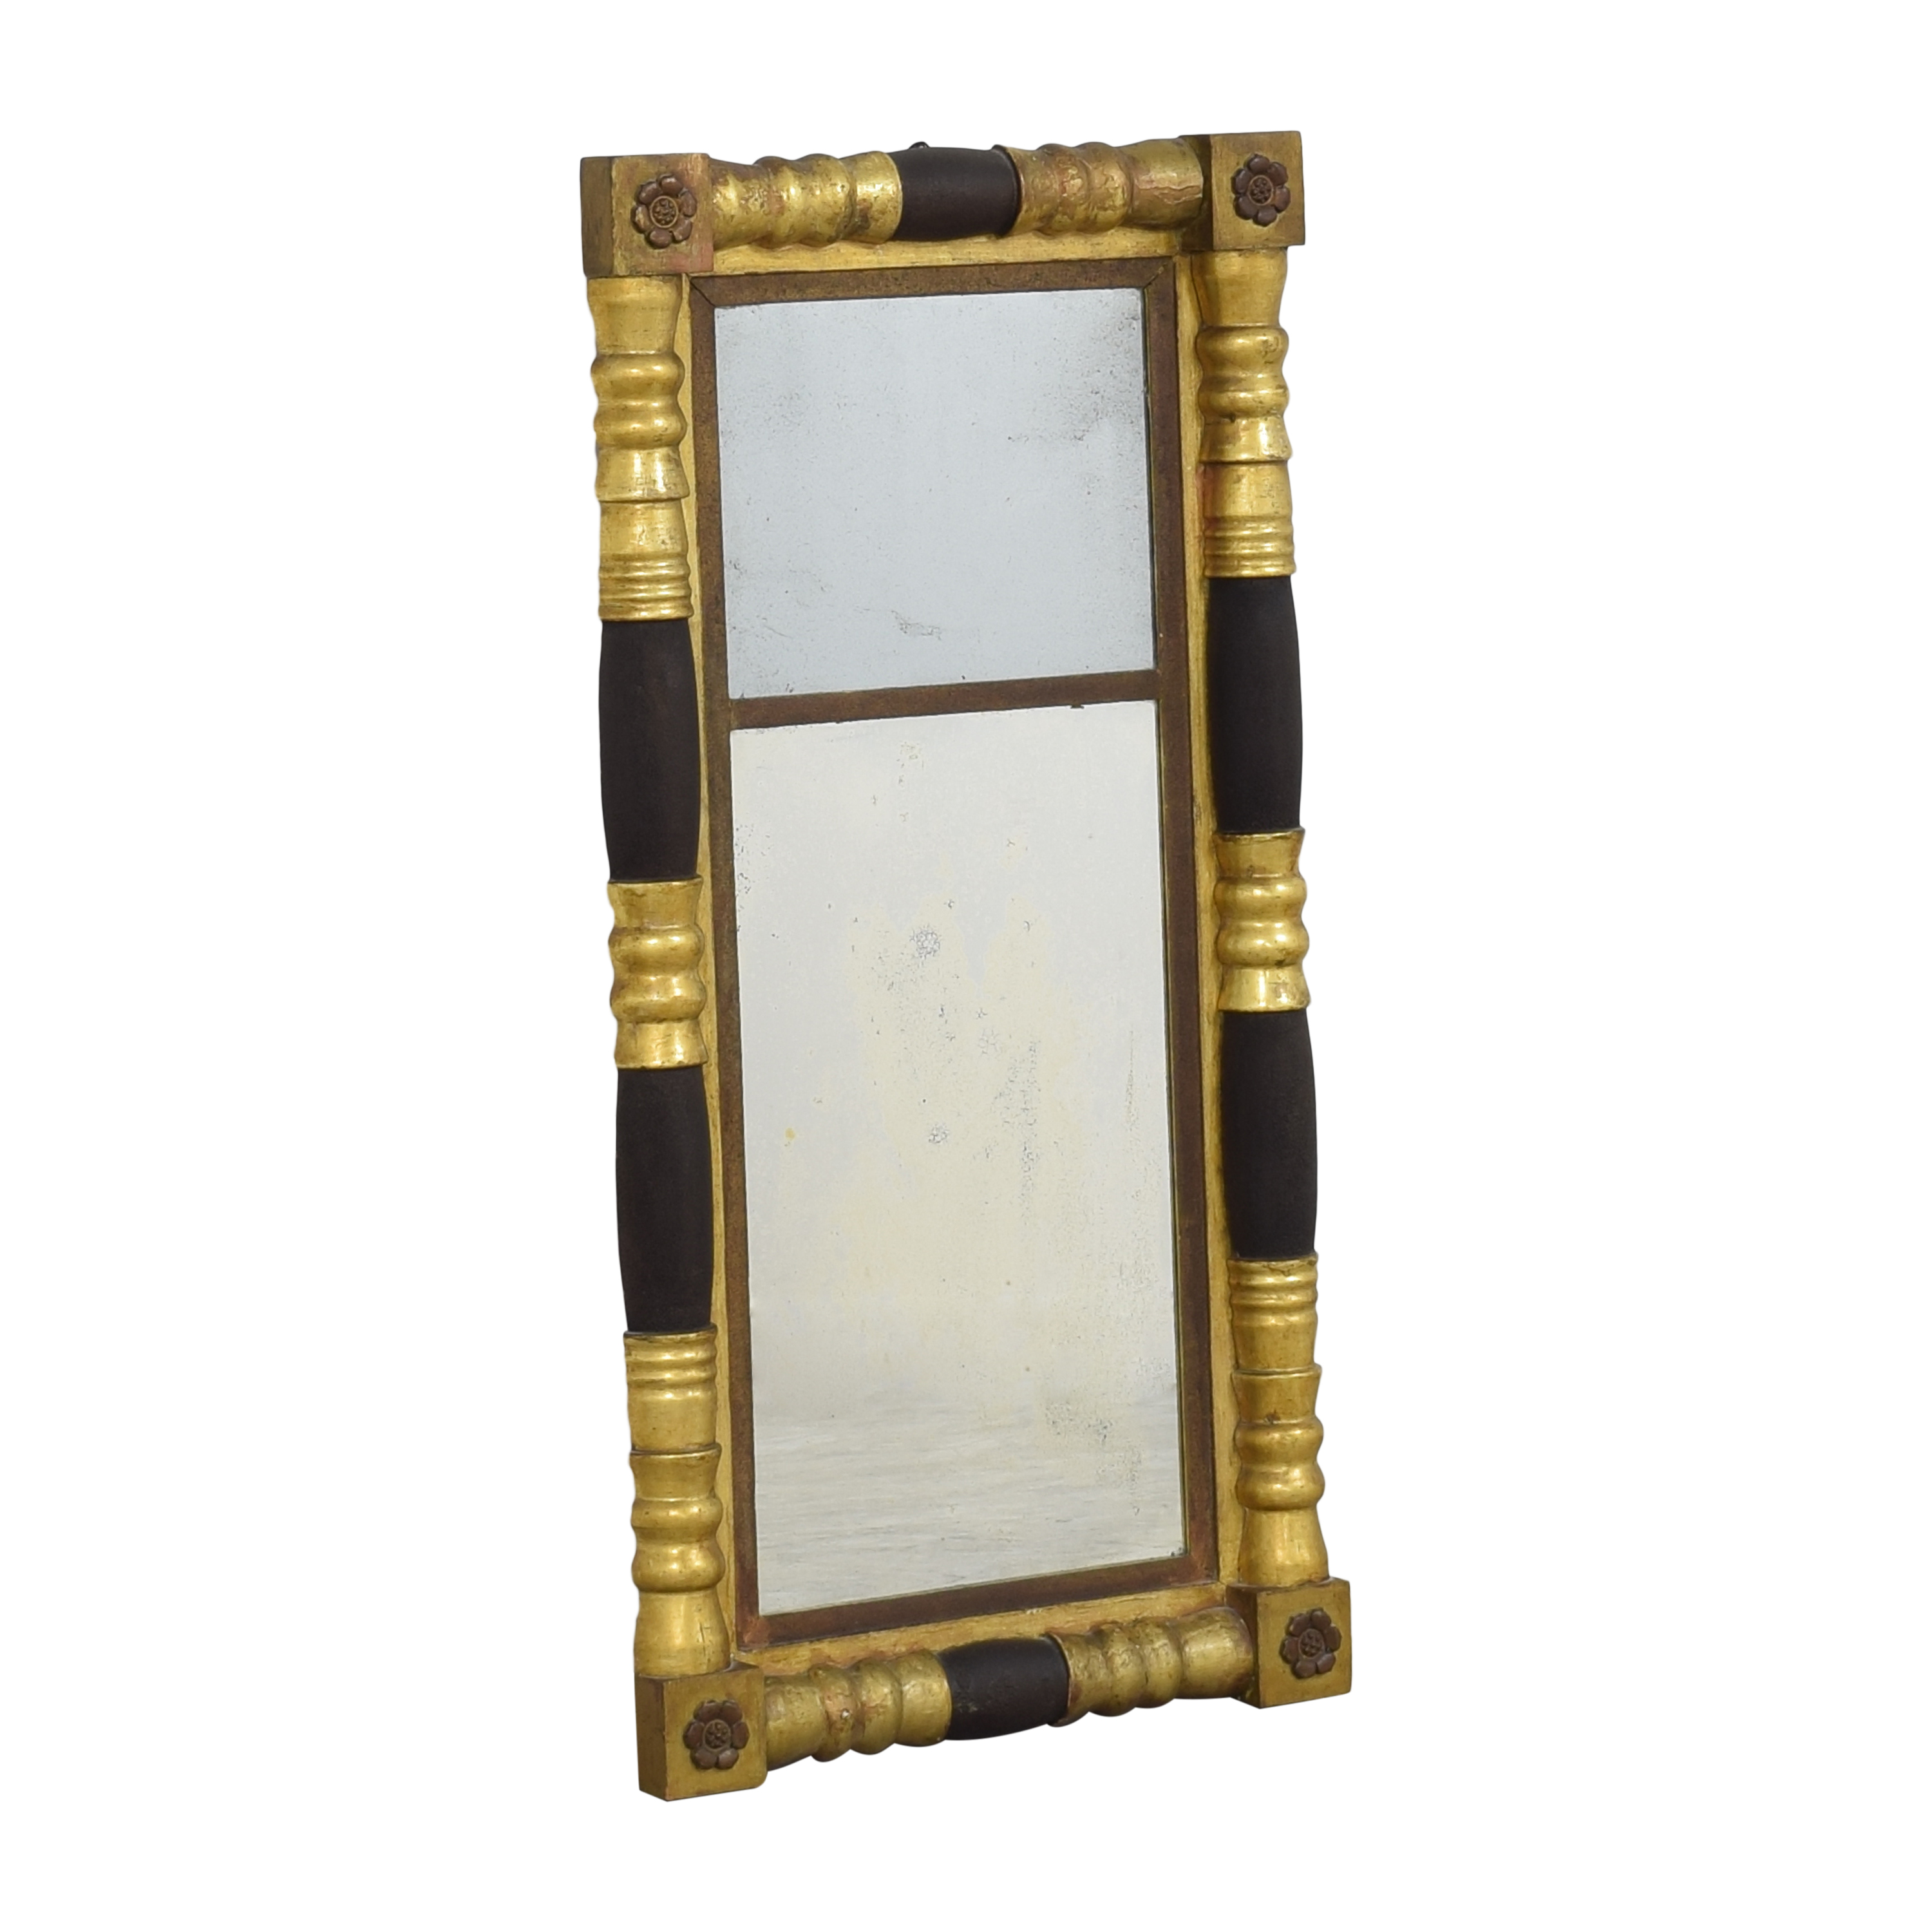 Vintage Colonial-Style Framed Mirror price